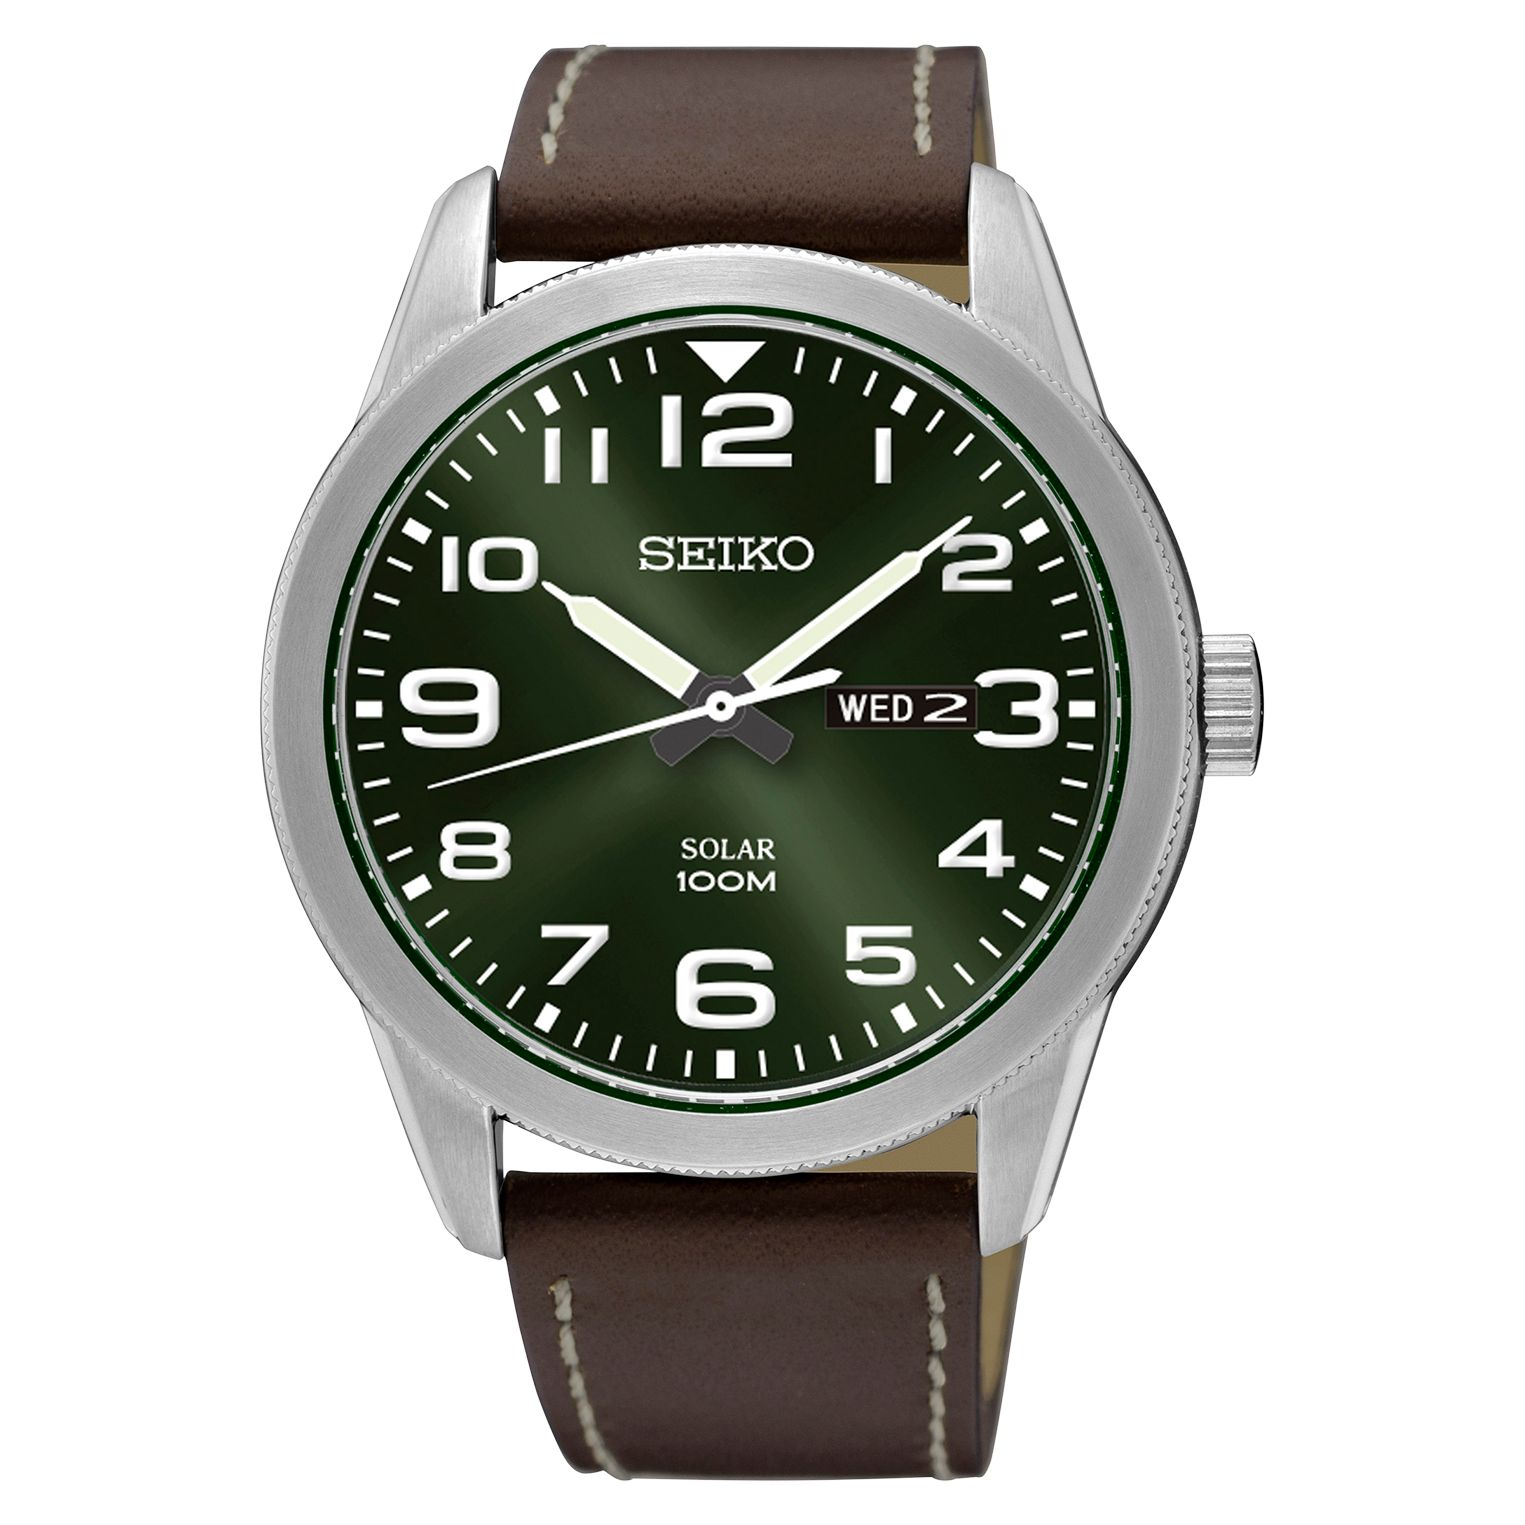 Seiko Seiko SNE473P1 Men's Conceptual Day Date Leather Strap Watch, Brown/Green